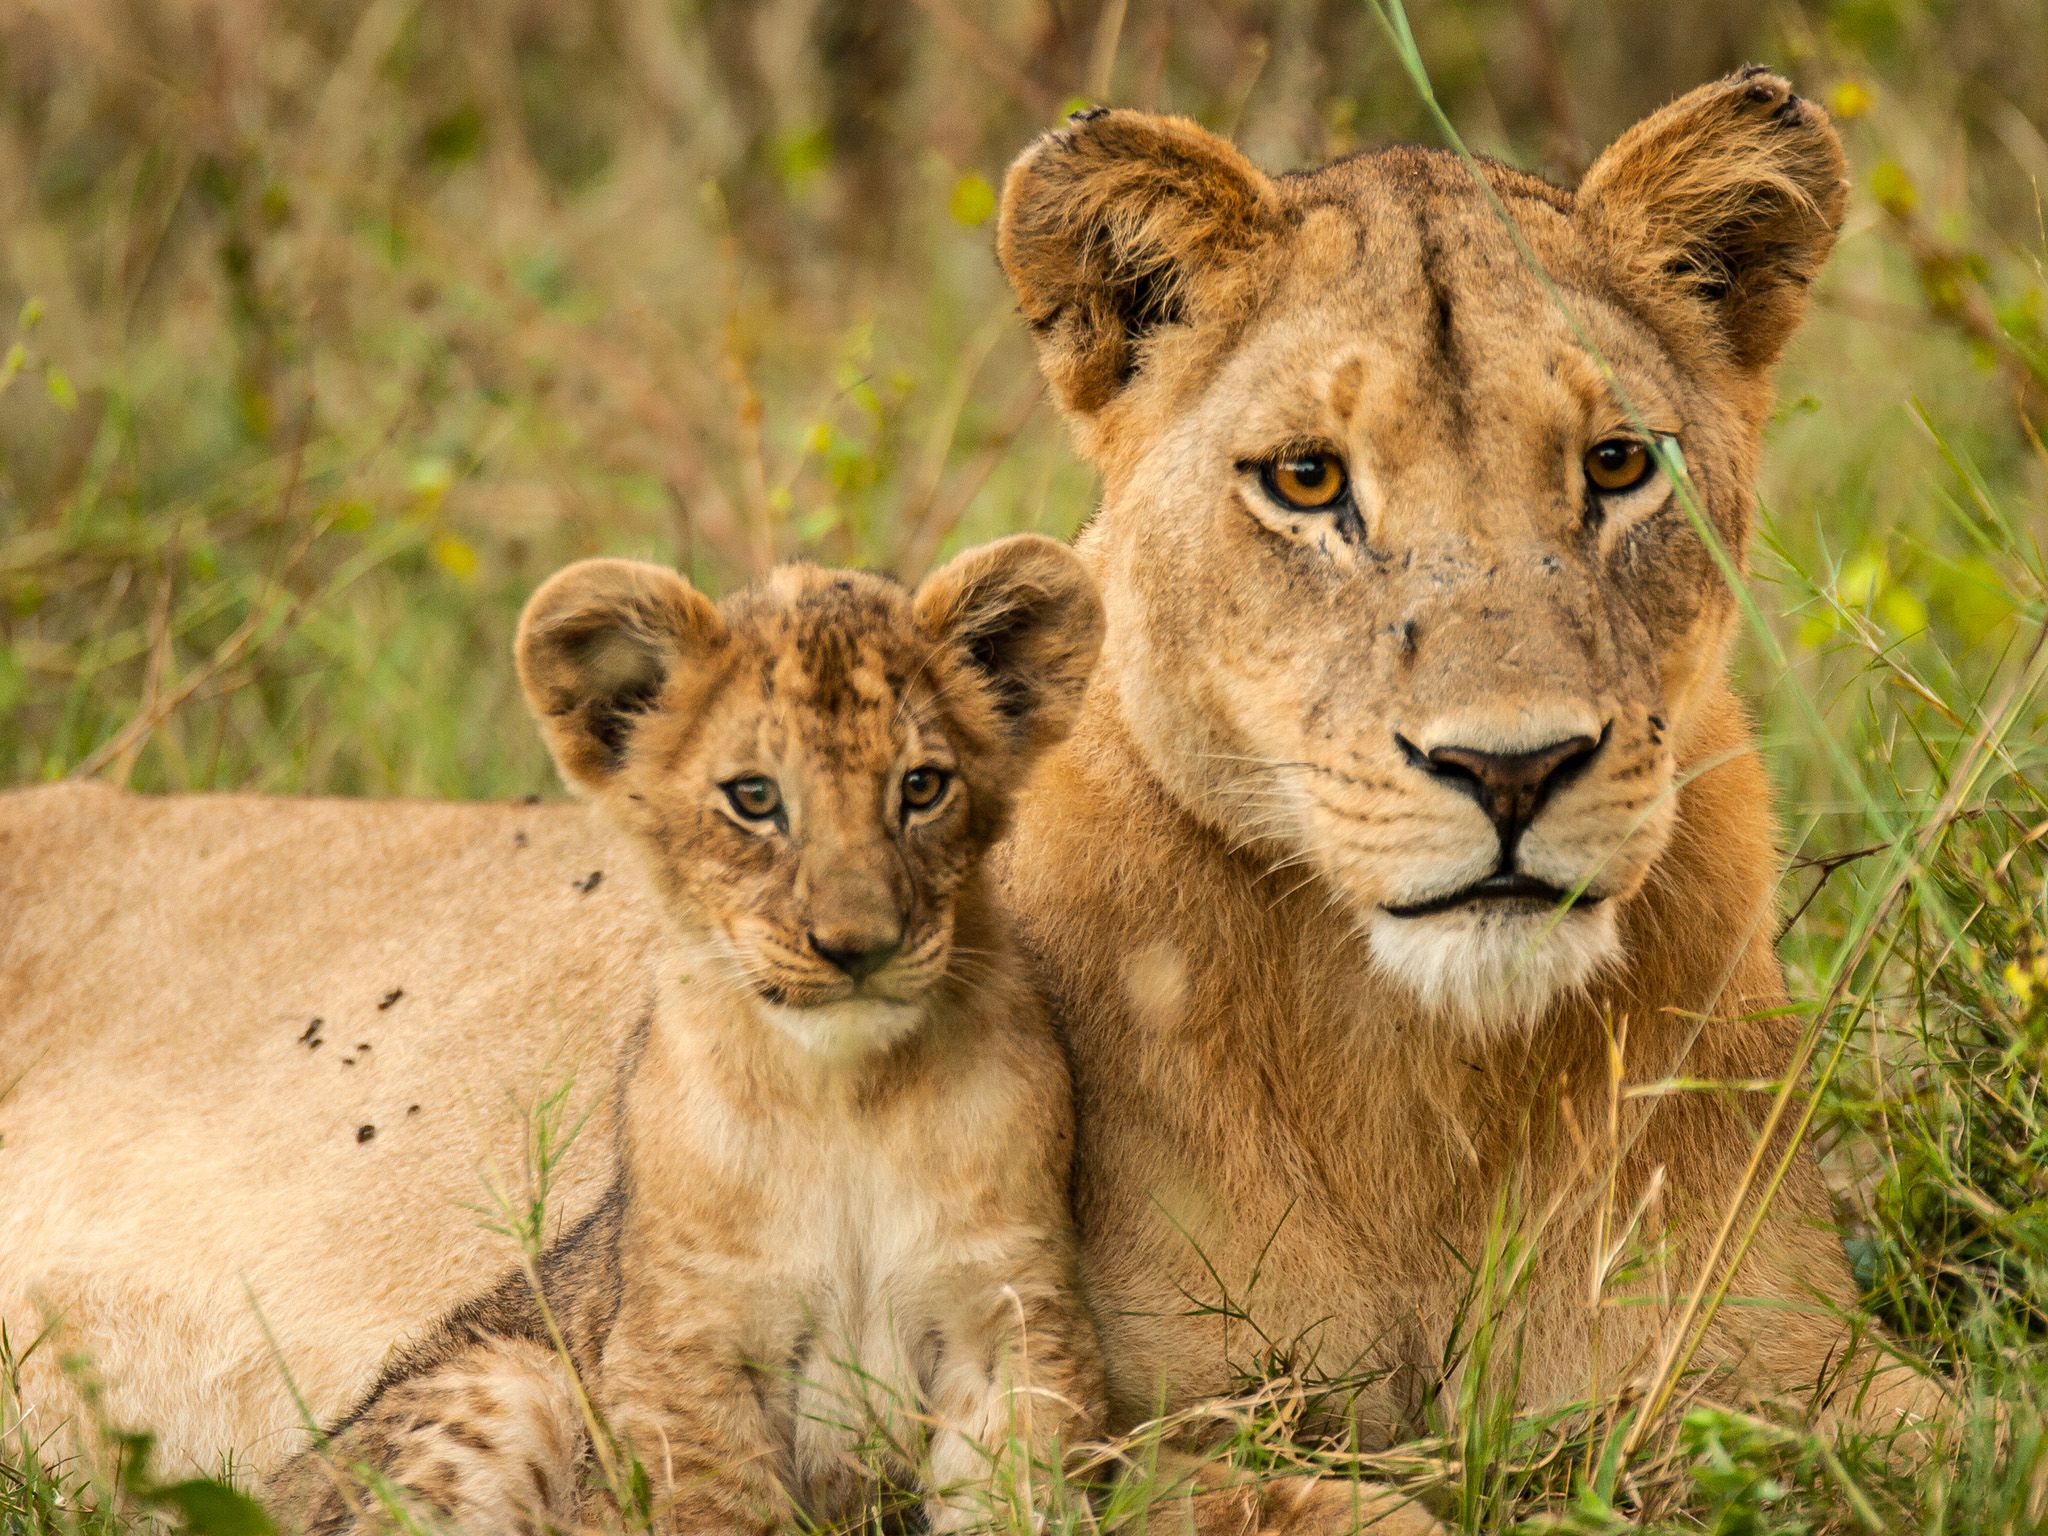 Lioness resting with cub. Cubs remain with their mother for 21 – 24 months. This image is fr... [Photo of the day - May 2015]